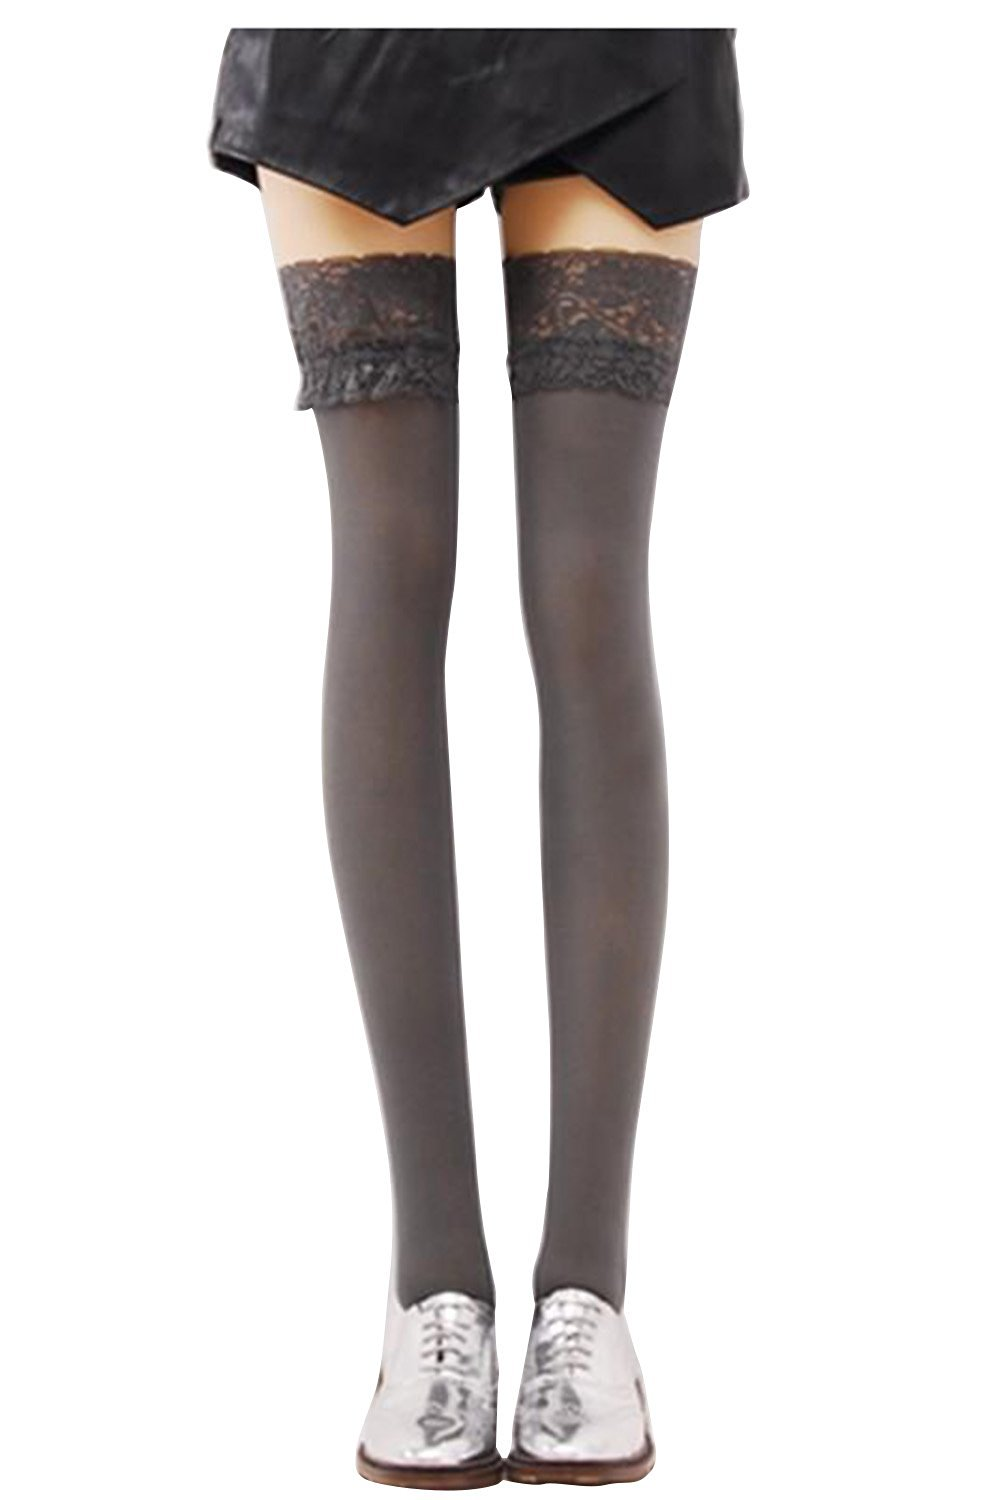 Over Knee Stockings - SODIAL(R) Sexy Fashion Women Lace Opaque High Socks Over Knee Thigh Stockings Gray